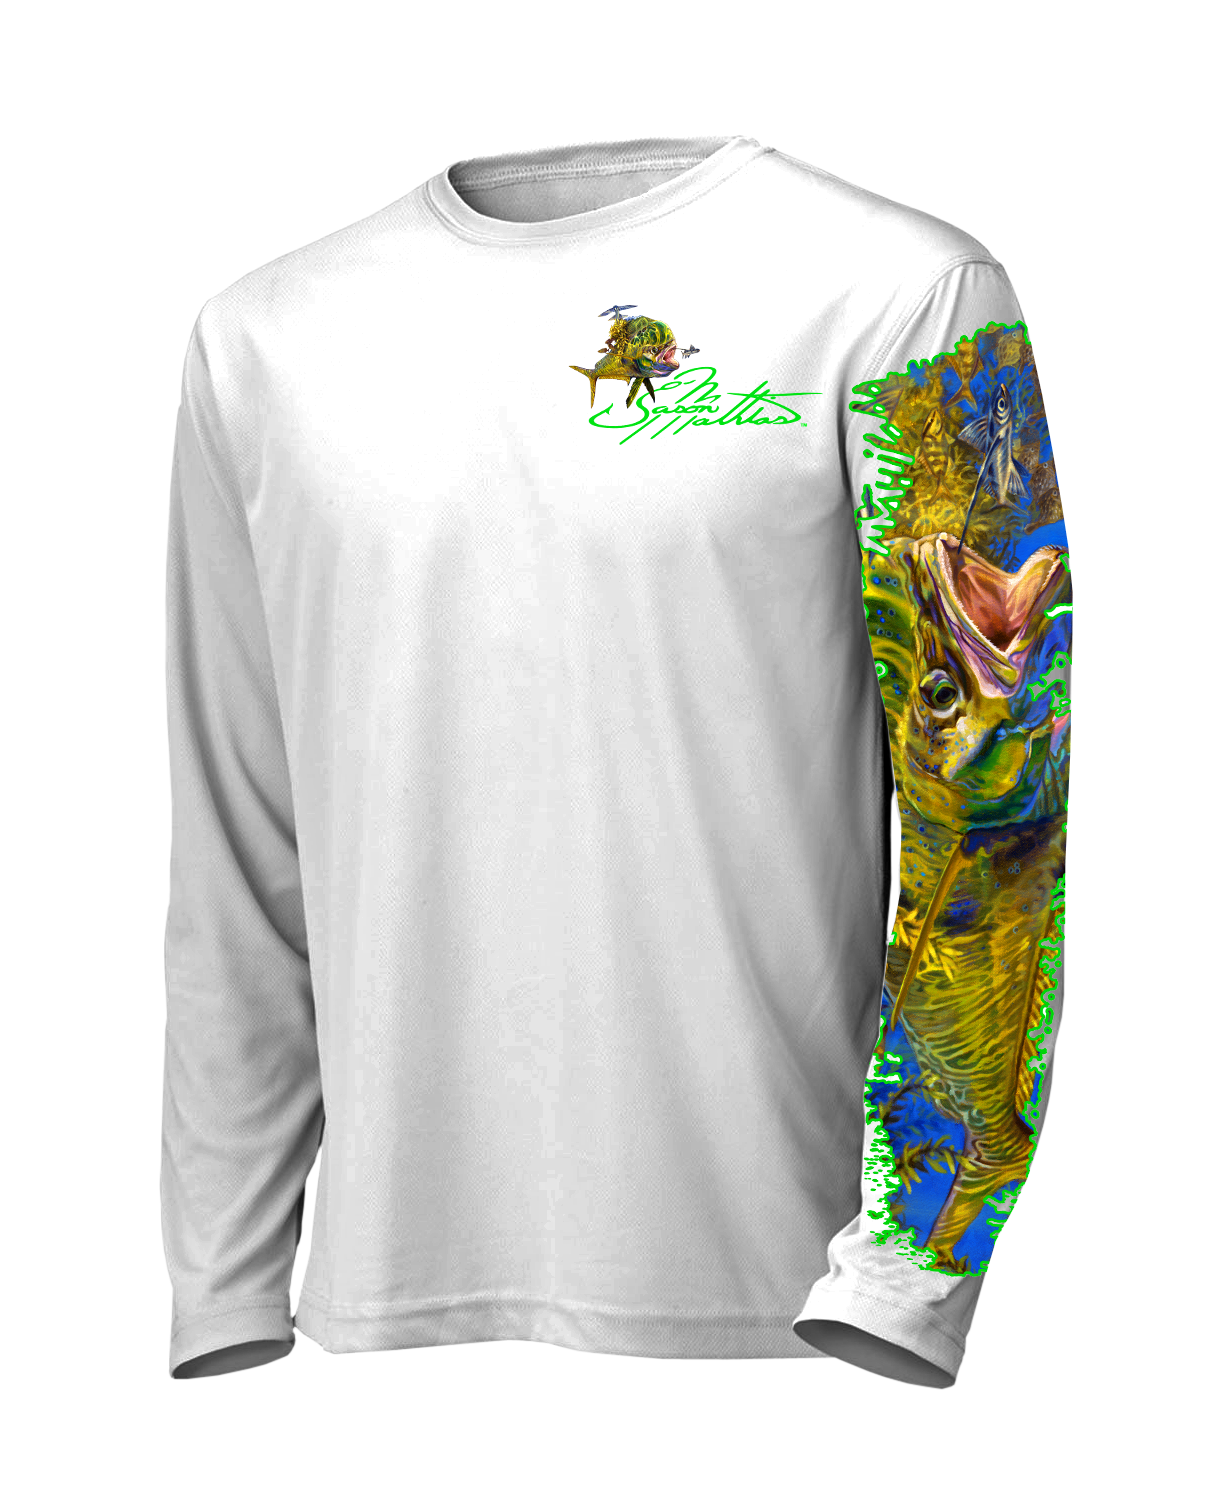 jason-mathias-shirt-line-front-mahi-dorado-dolphin-art-offshore-performance-clothing-gear.png